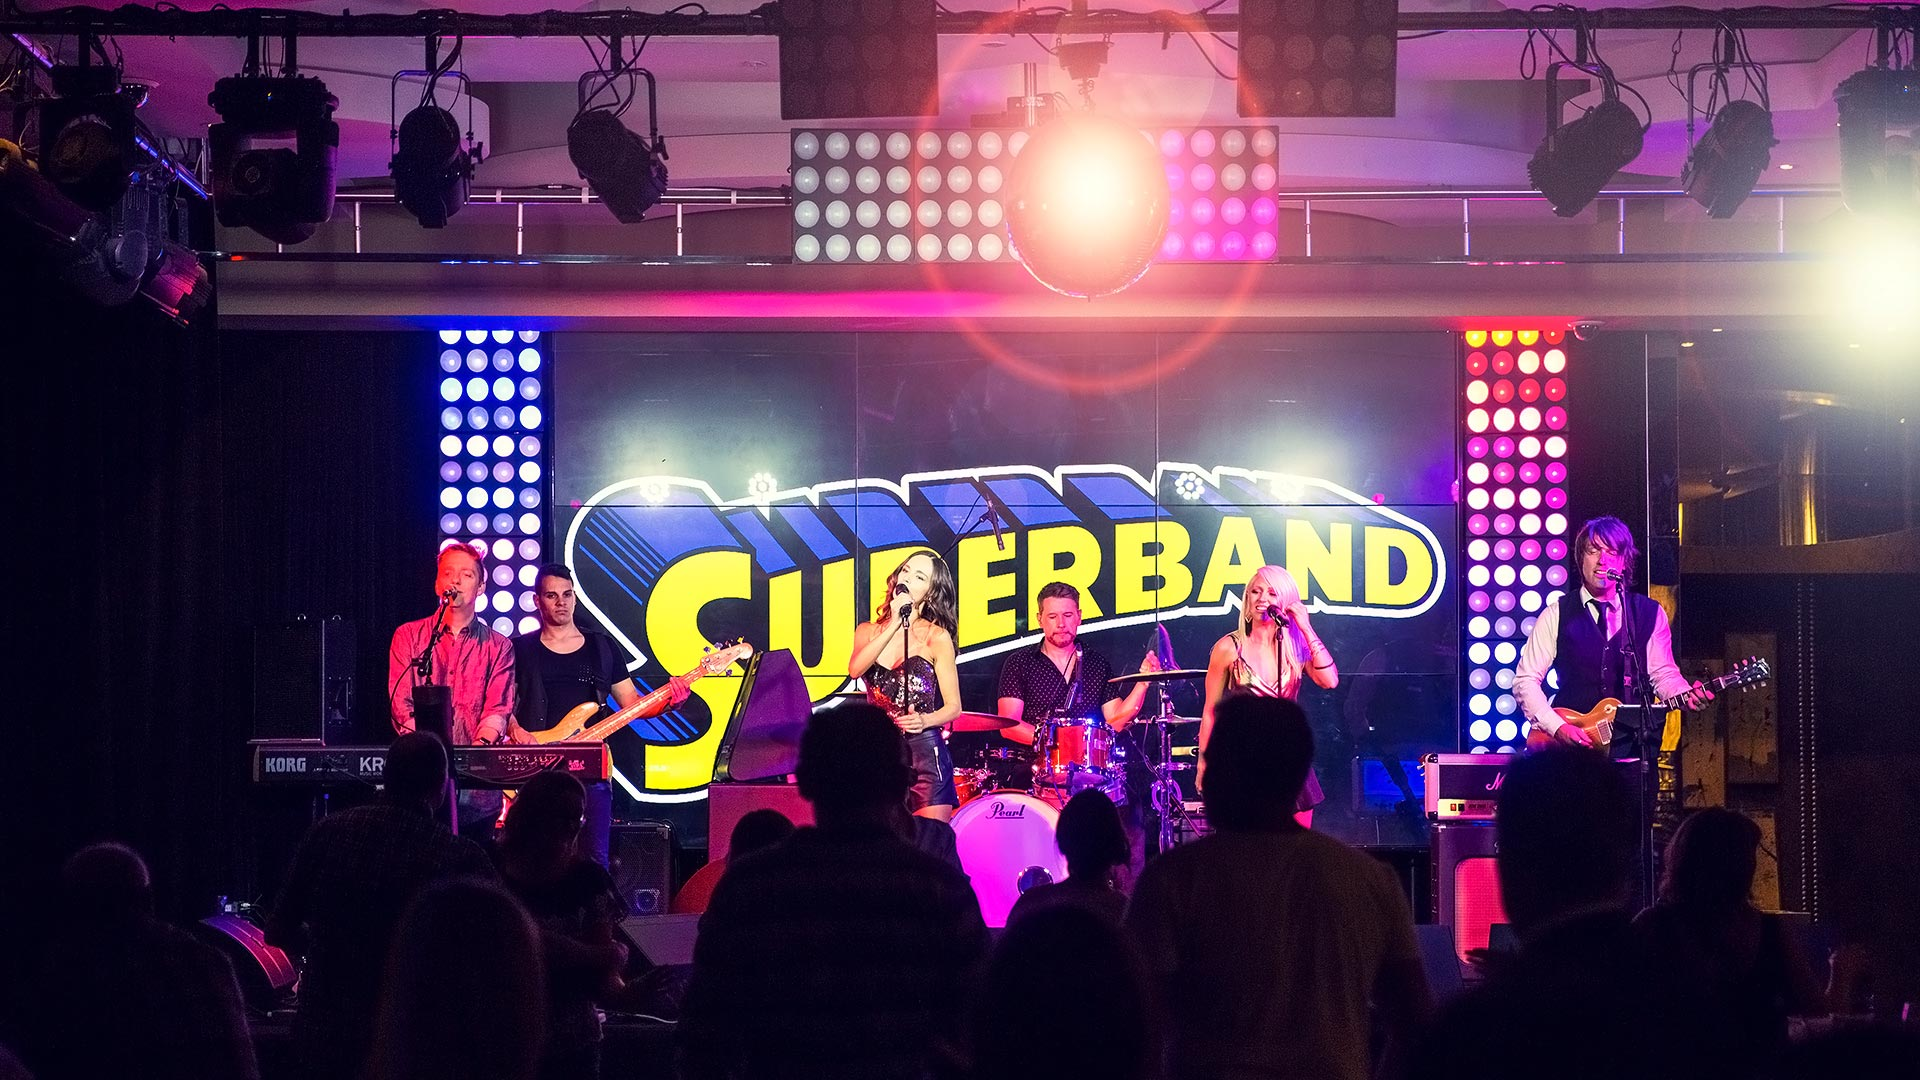 Superband Gigs